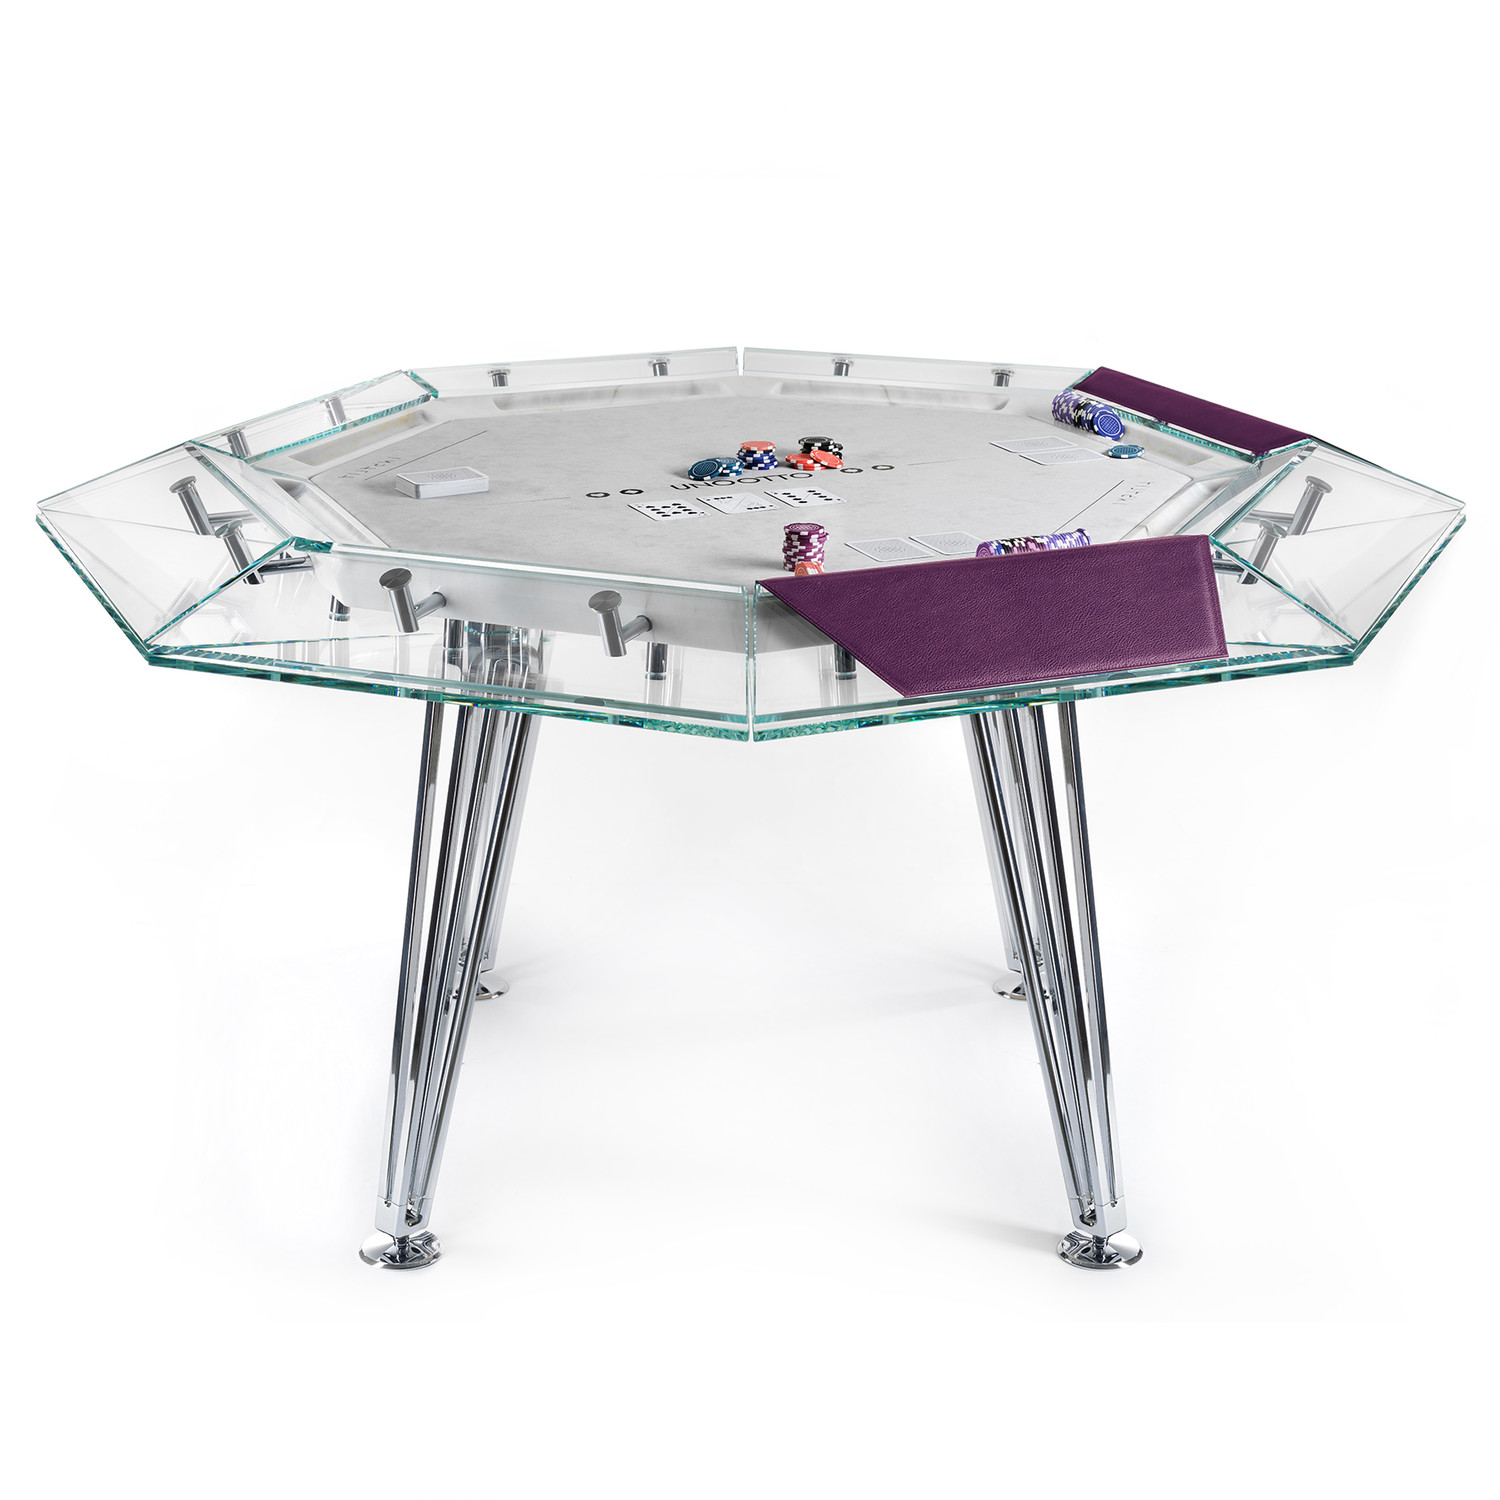 UNOOTTO Poker Table // 5 player (Leather: Purple + Alcantra: White